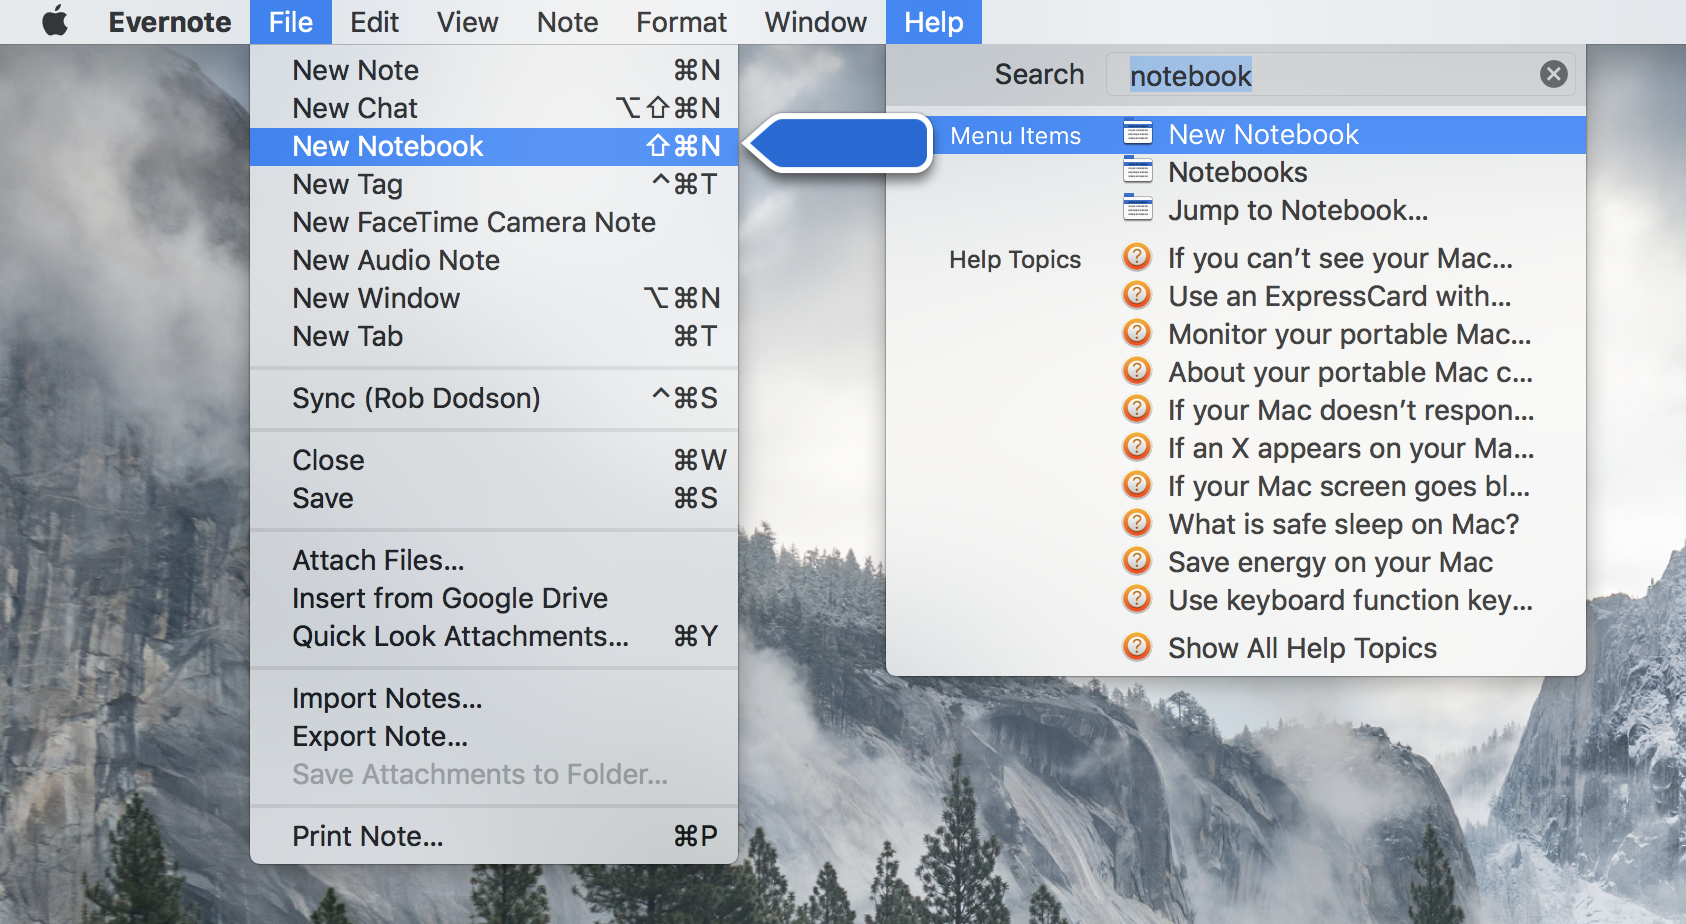 Using Evernote's Help menu to find the New Notebook command